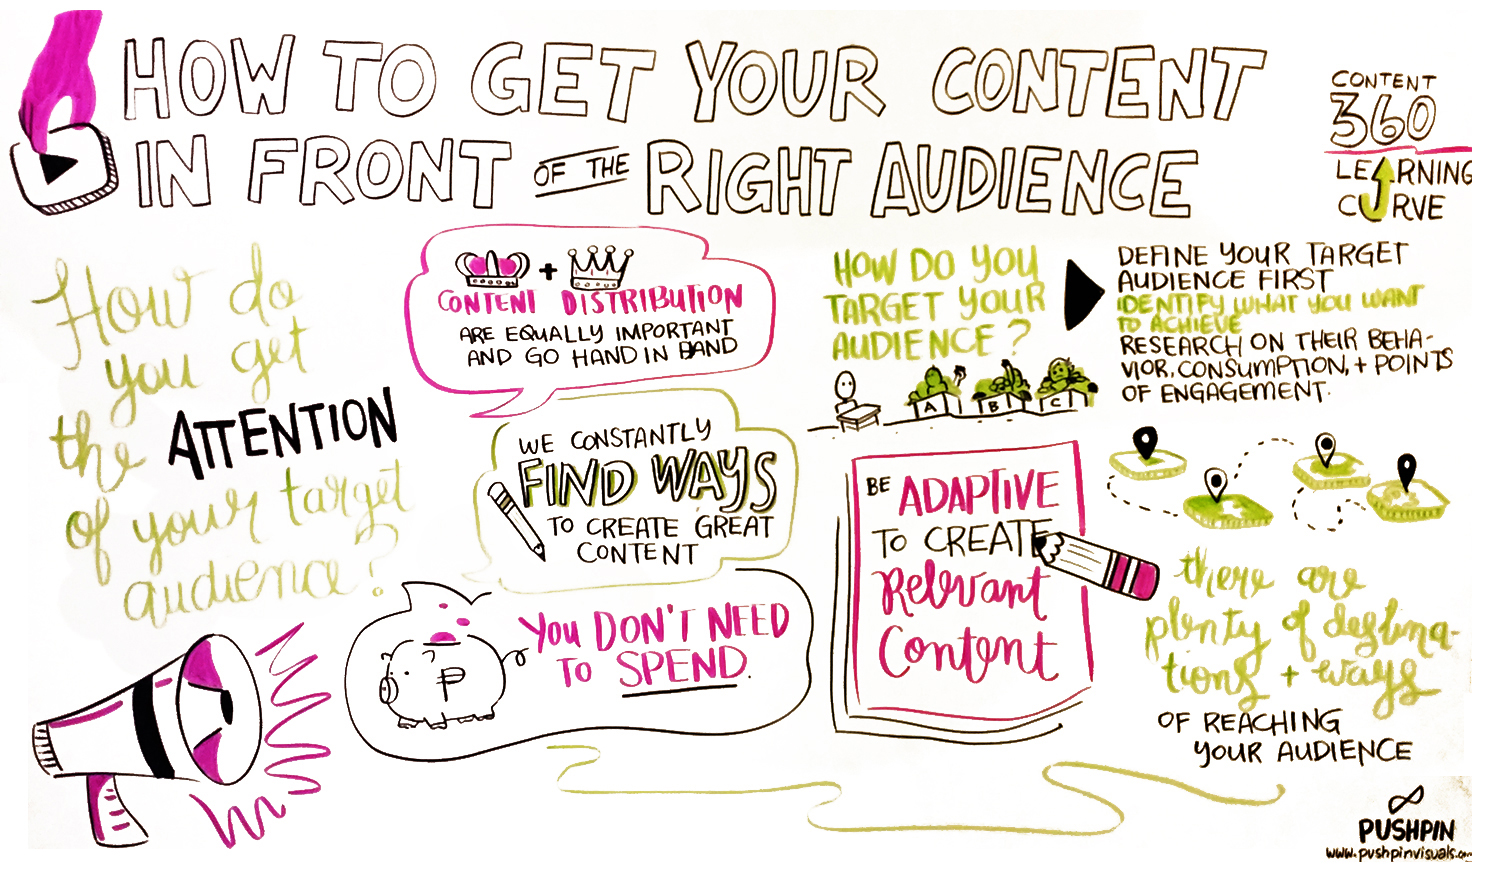 How-to-Get-Your-Content-in-Front-of-the-Right-Audience